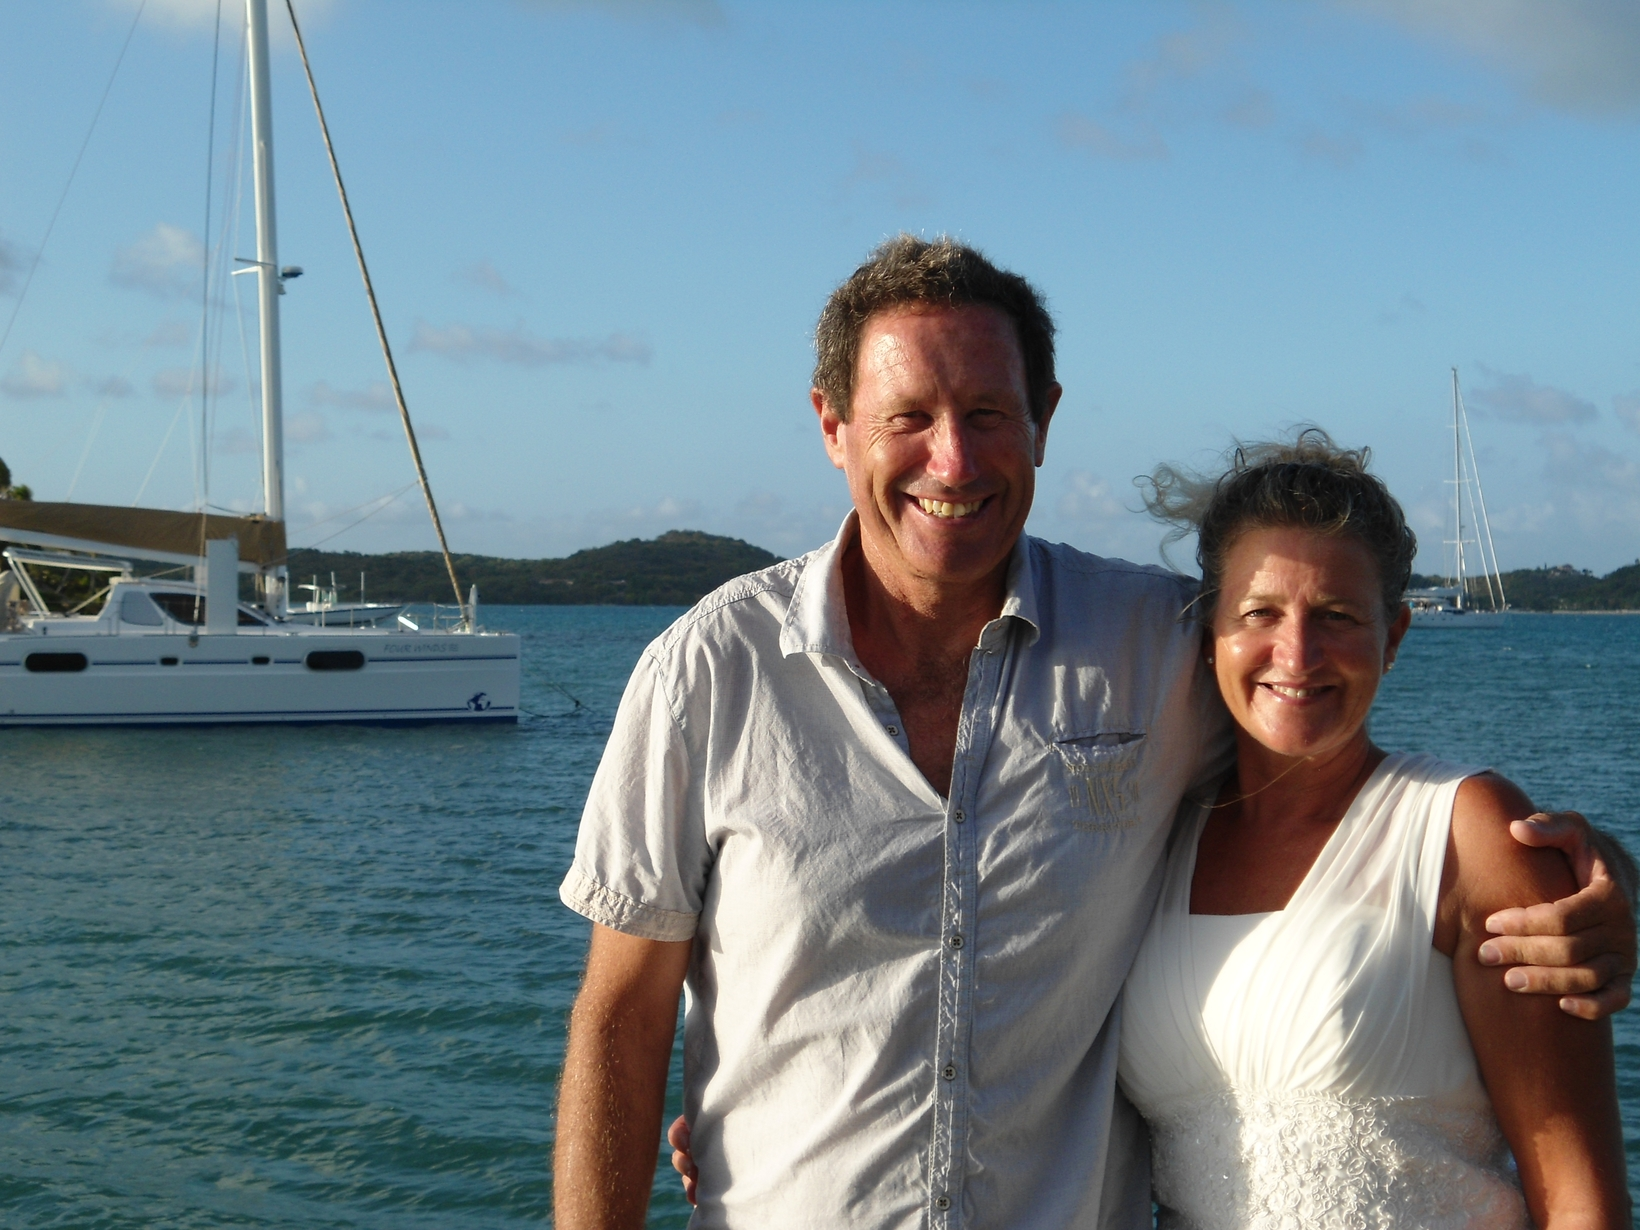 Debra & Bill from Kerikeri, New Zealand